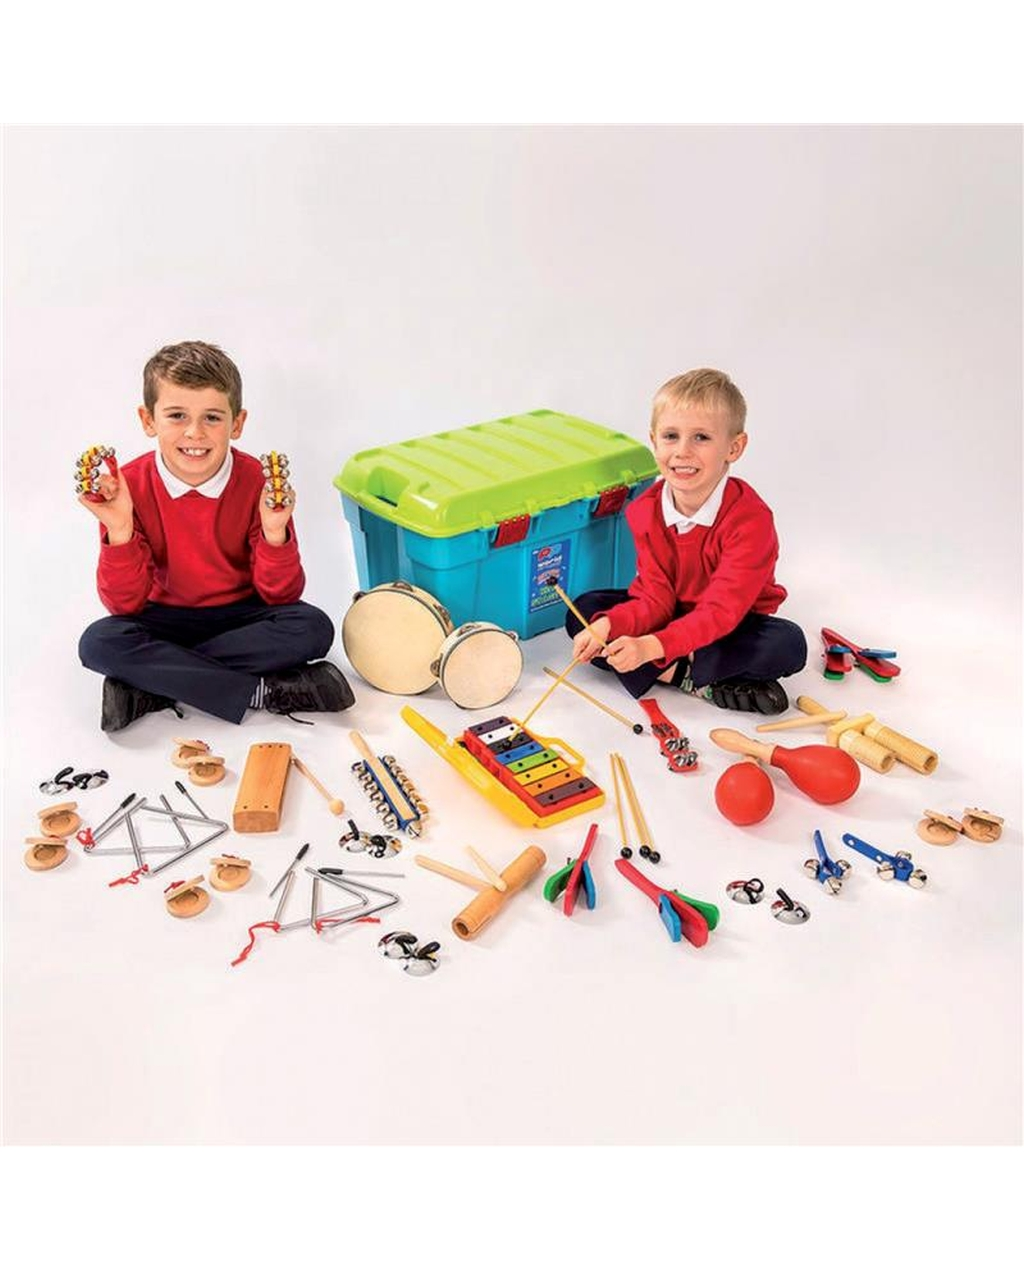 KS1 Percussion Set